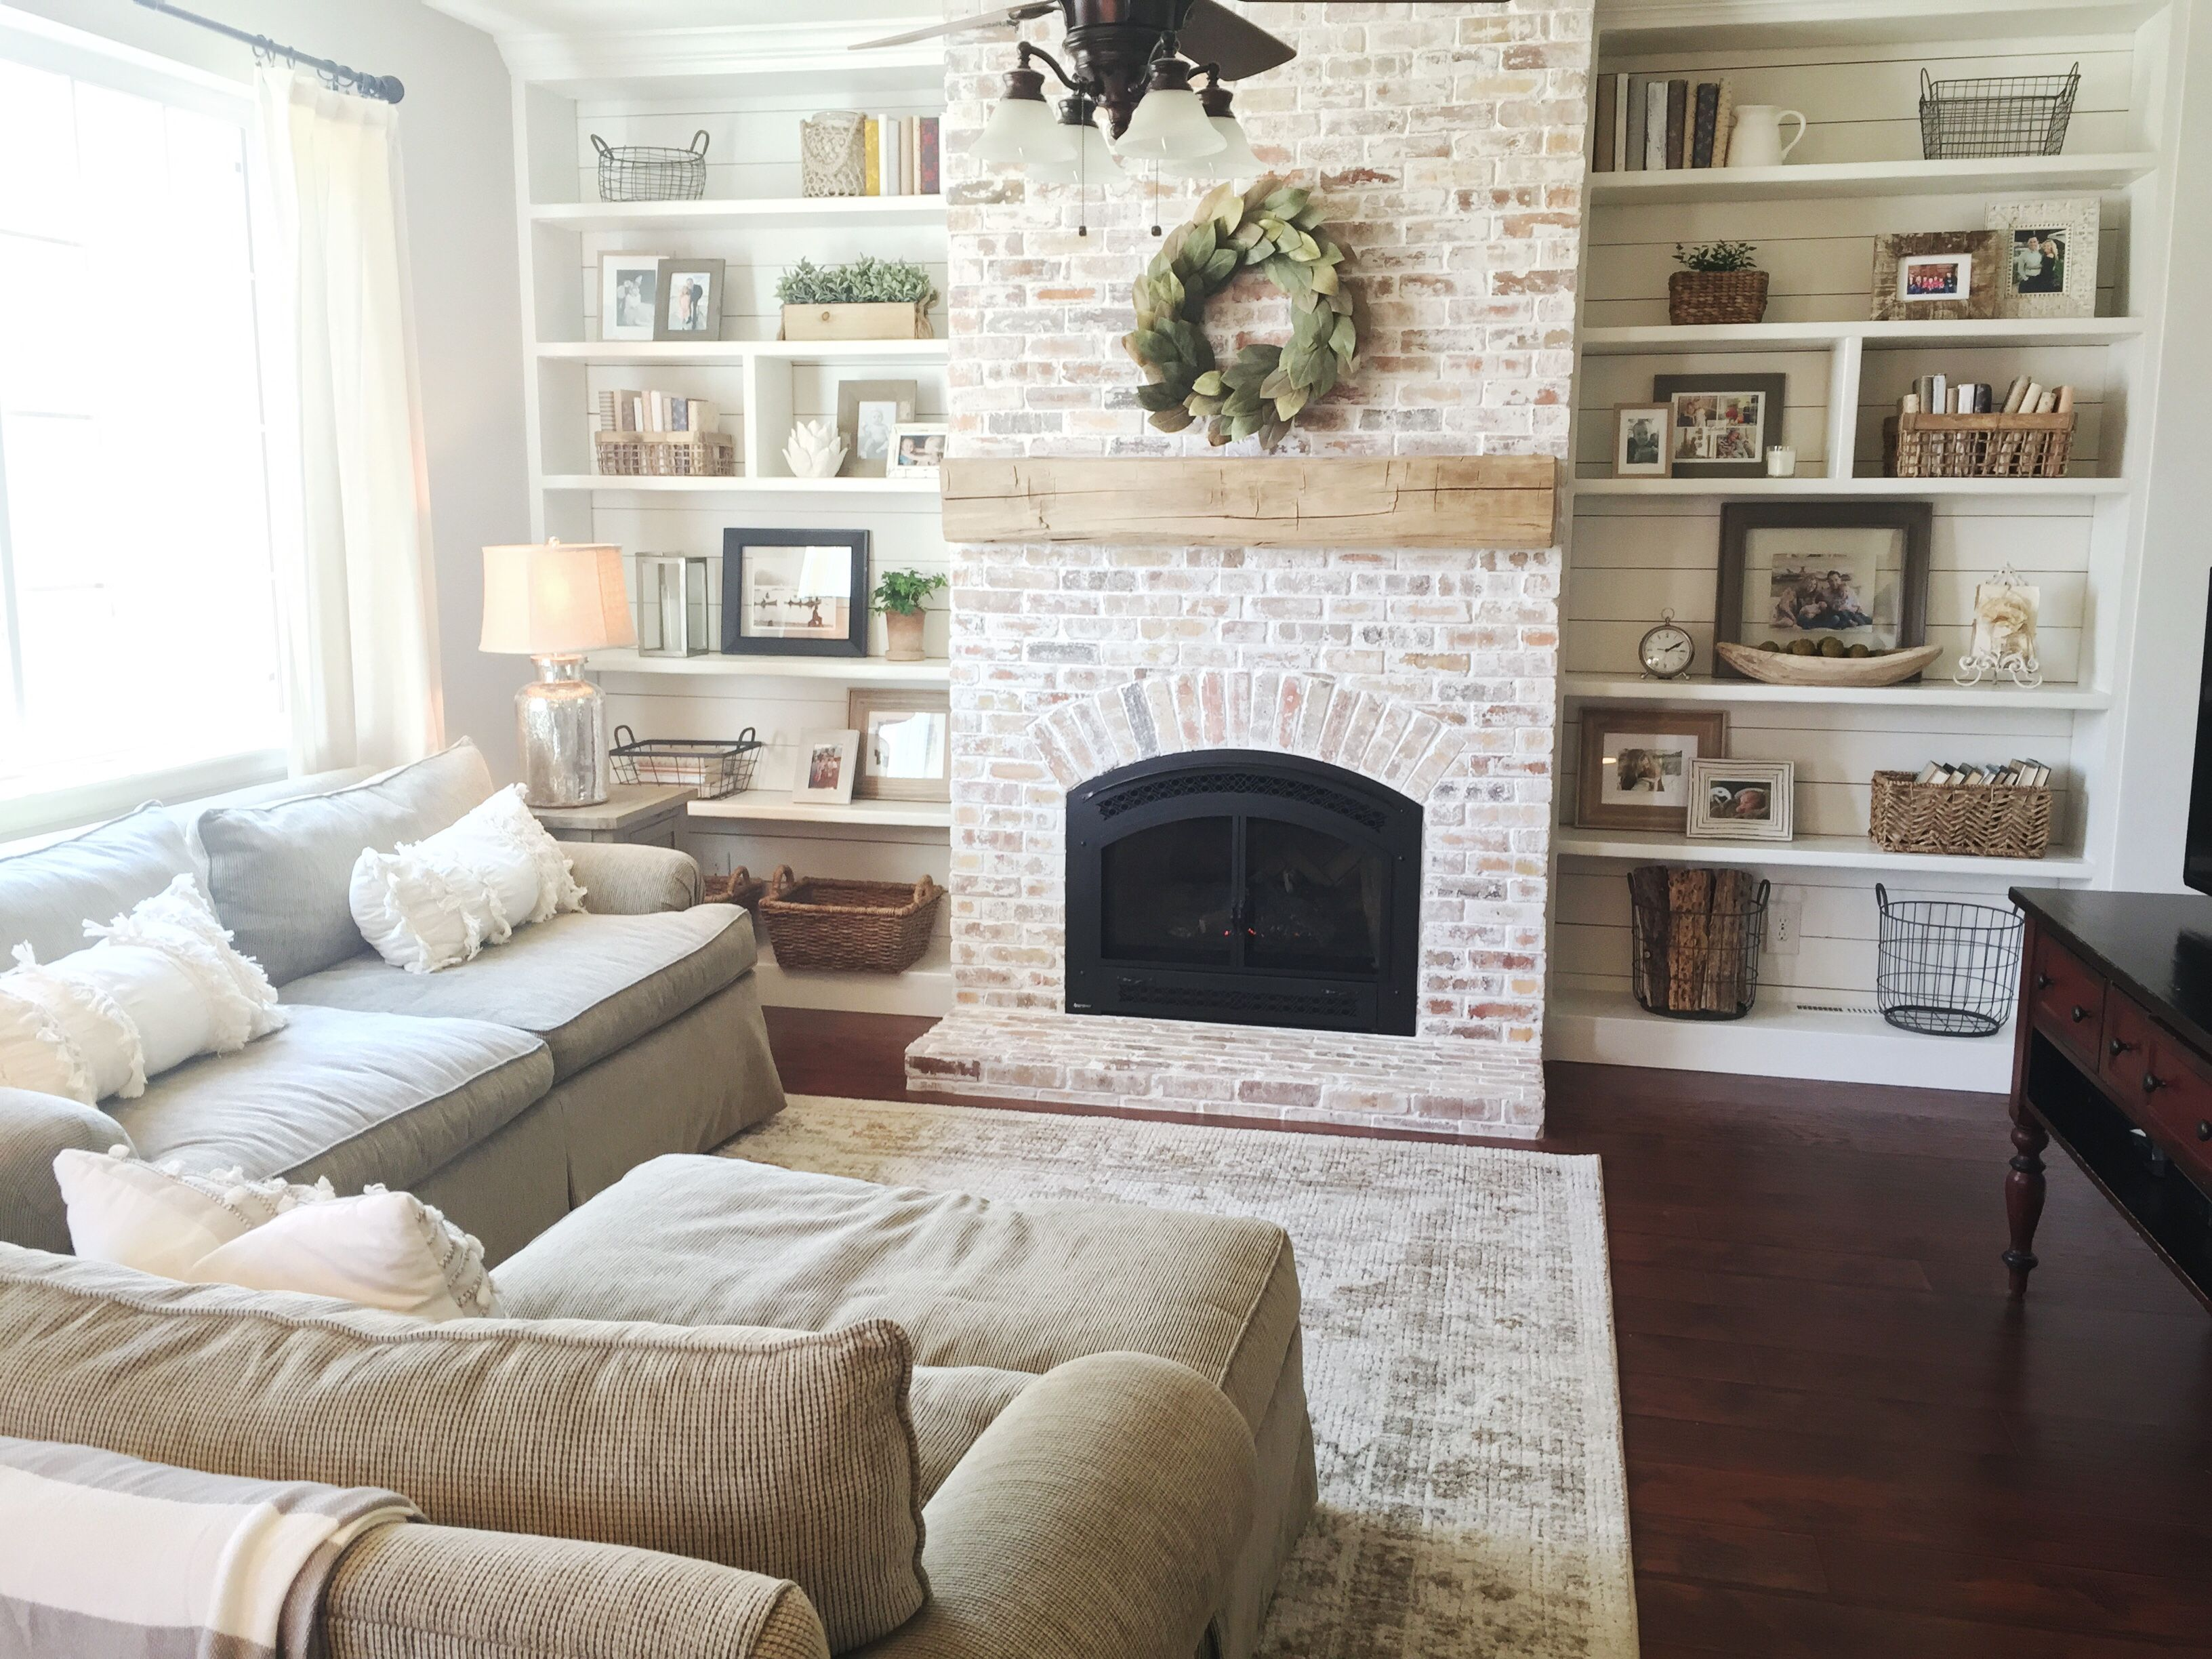 Built Ins Shiplap White Washed Brick Fireplace Farm House Living Room White Wash Brick Fireplace Fireplace Built Ins